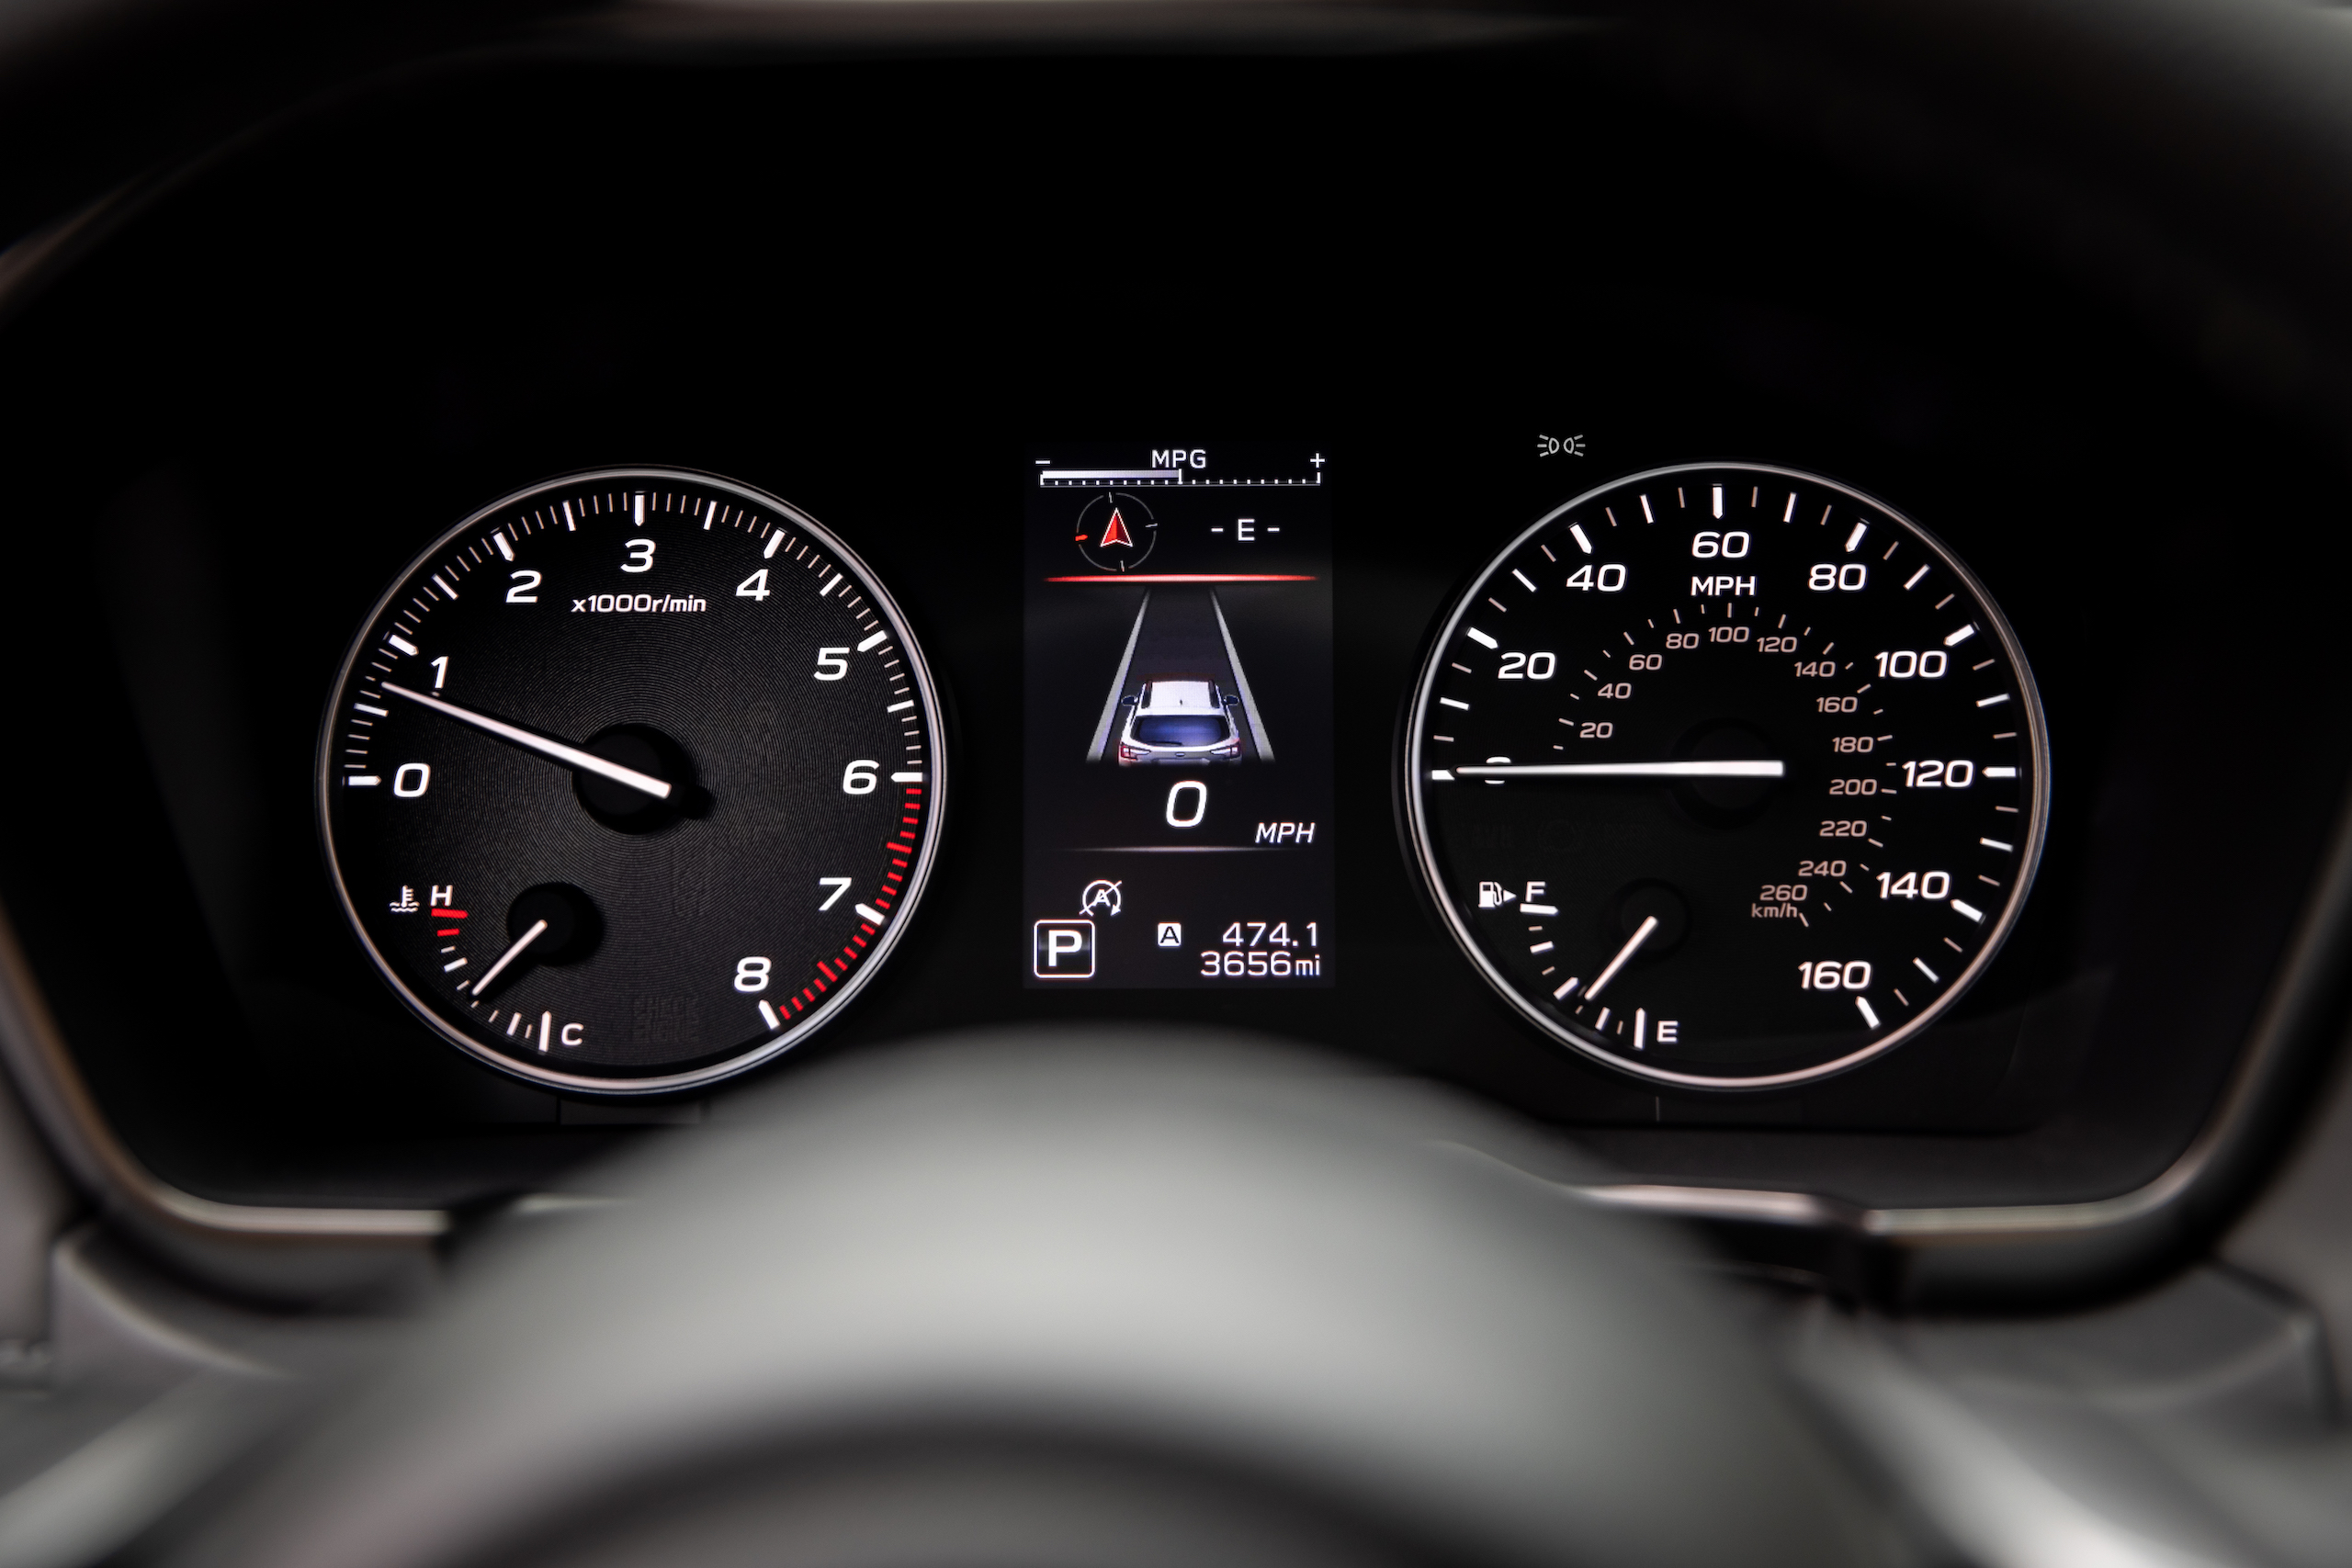 Subaru Outback dash cluster gauges detail